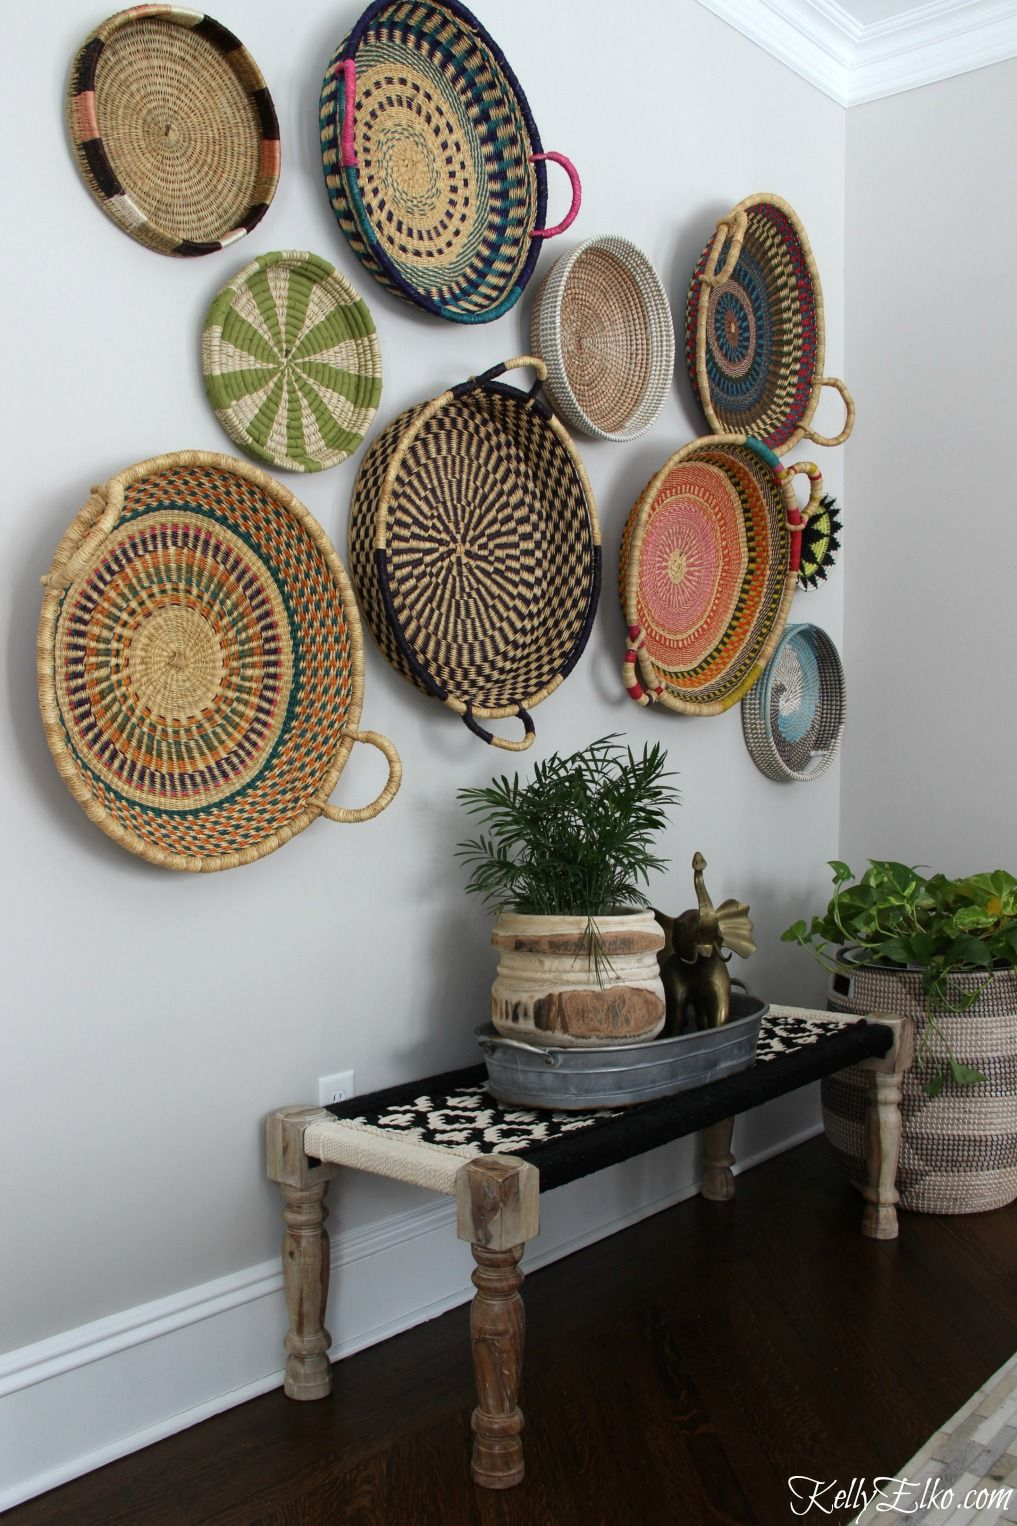 4 Piece Handwoven Wheel Wall Decor Sets Within Well Liked Colorful Basket Gallery Wall (View 4 of 20)